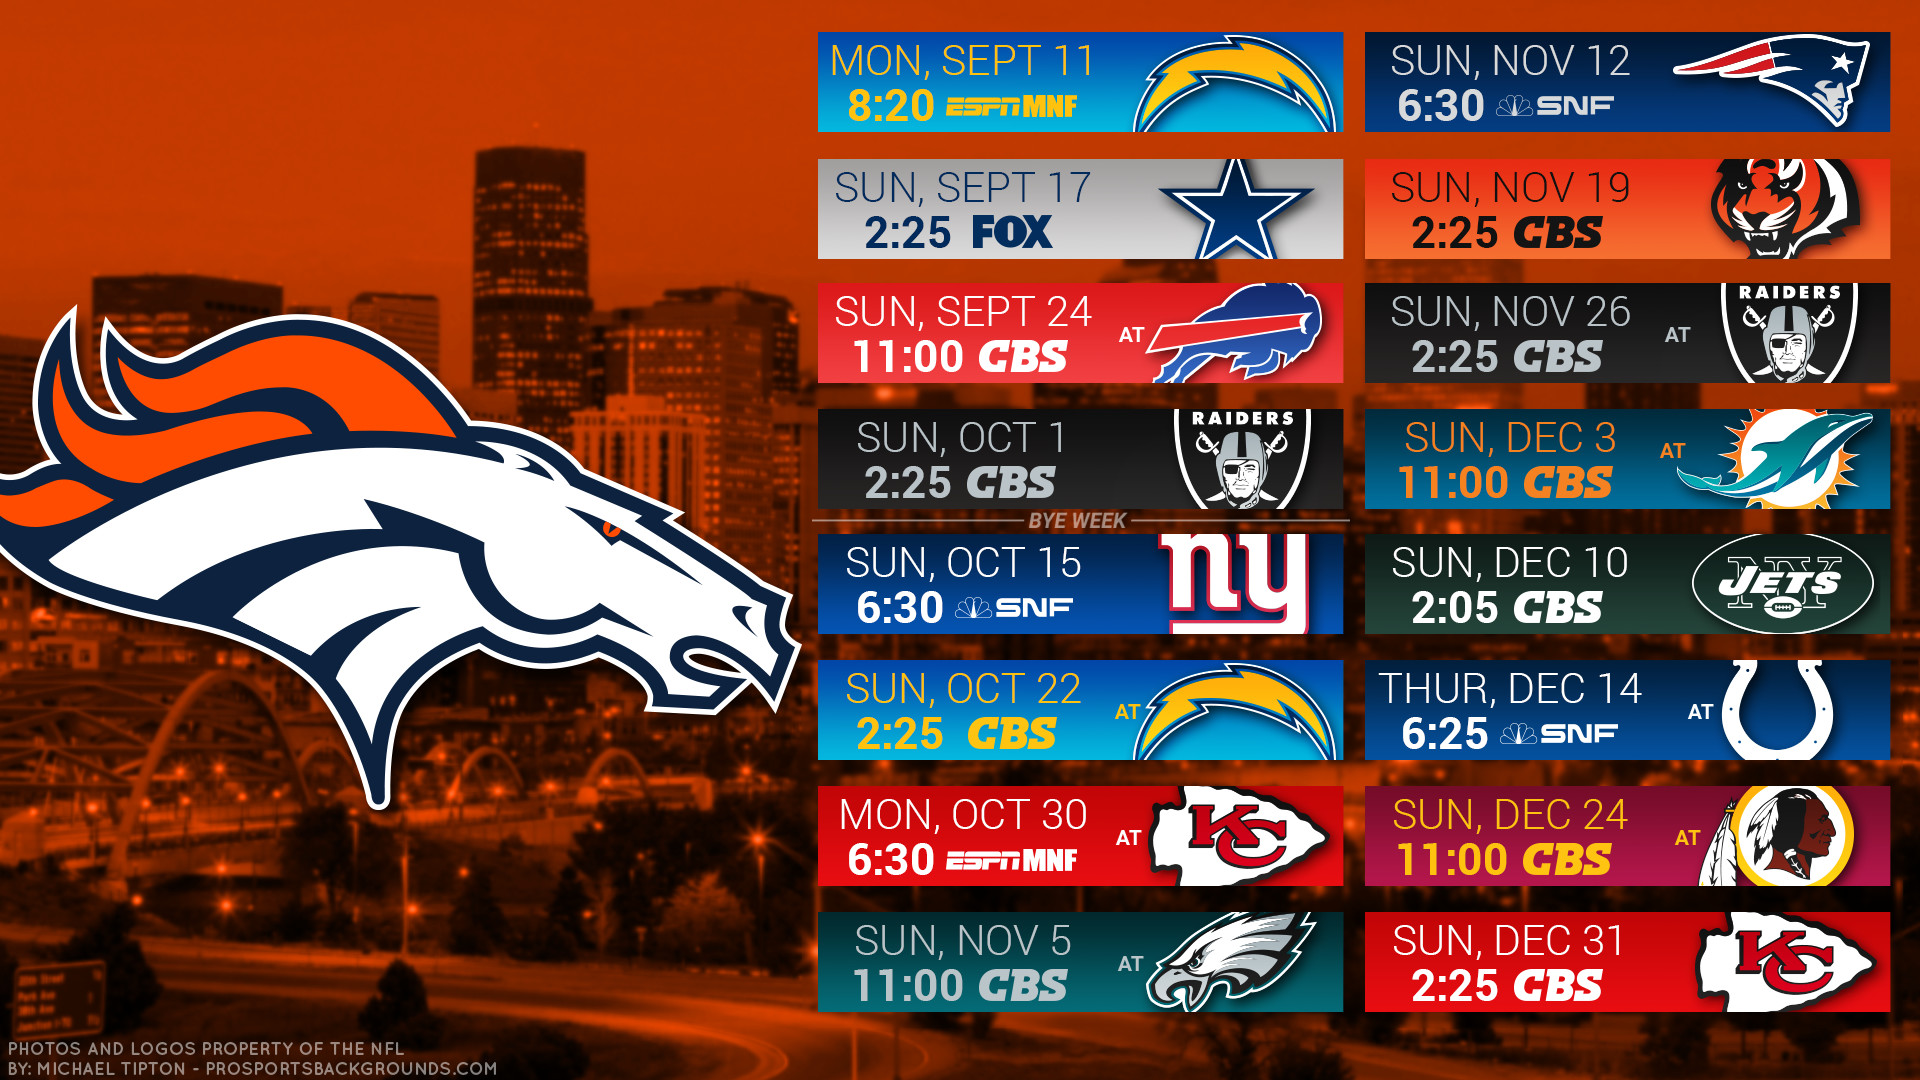 Denver Broncos 2017 schedule city football logo wallpaper free pc desktop  computer …